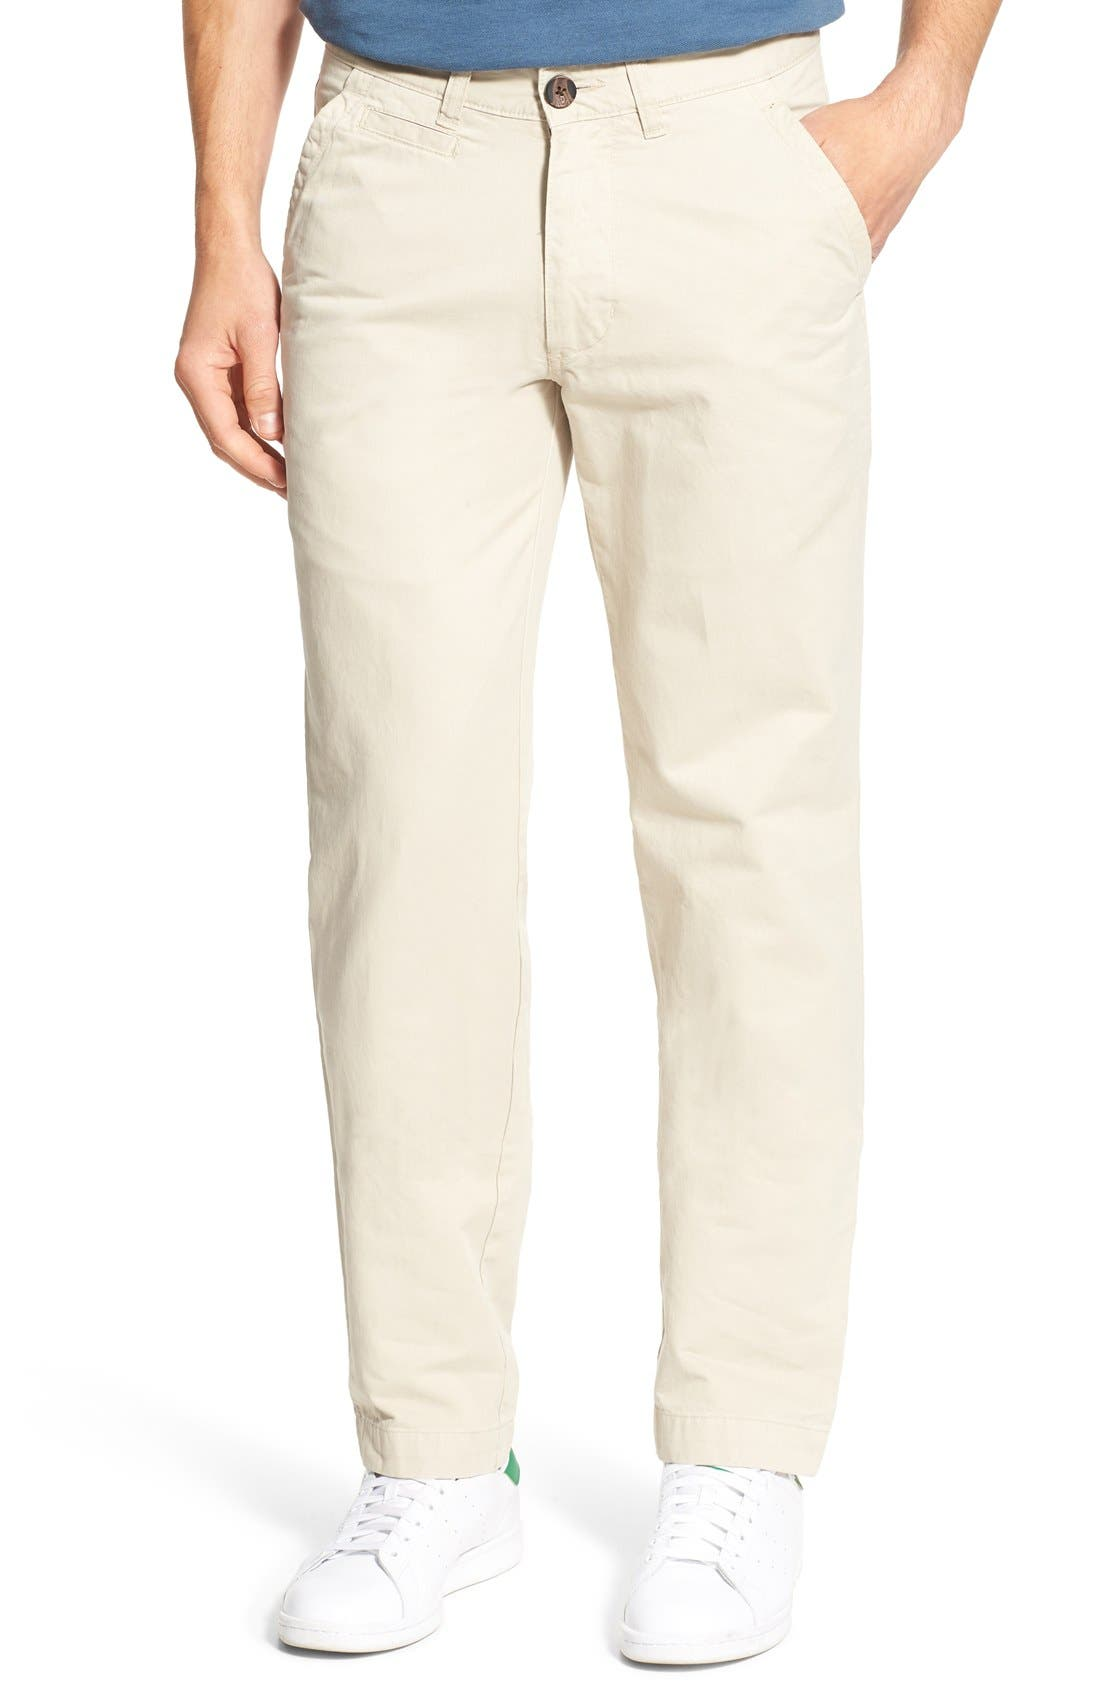 'Sahara' Trim Fit Vintage Washed Twill Chinos,                         Main,                         color, Stone